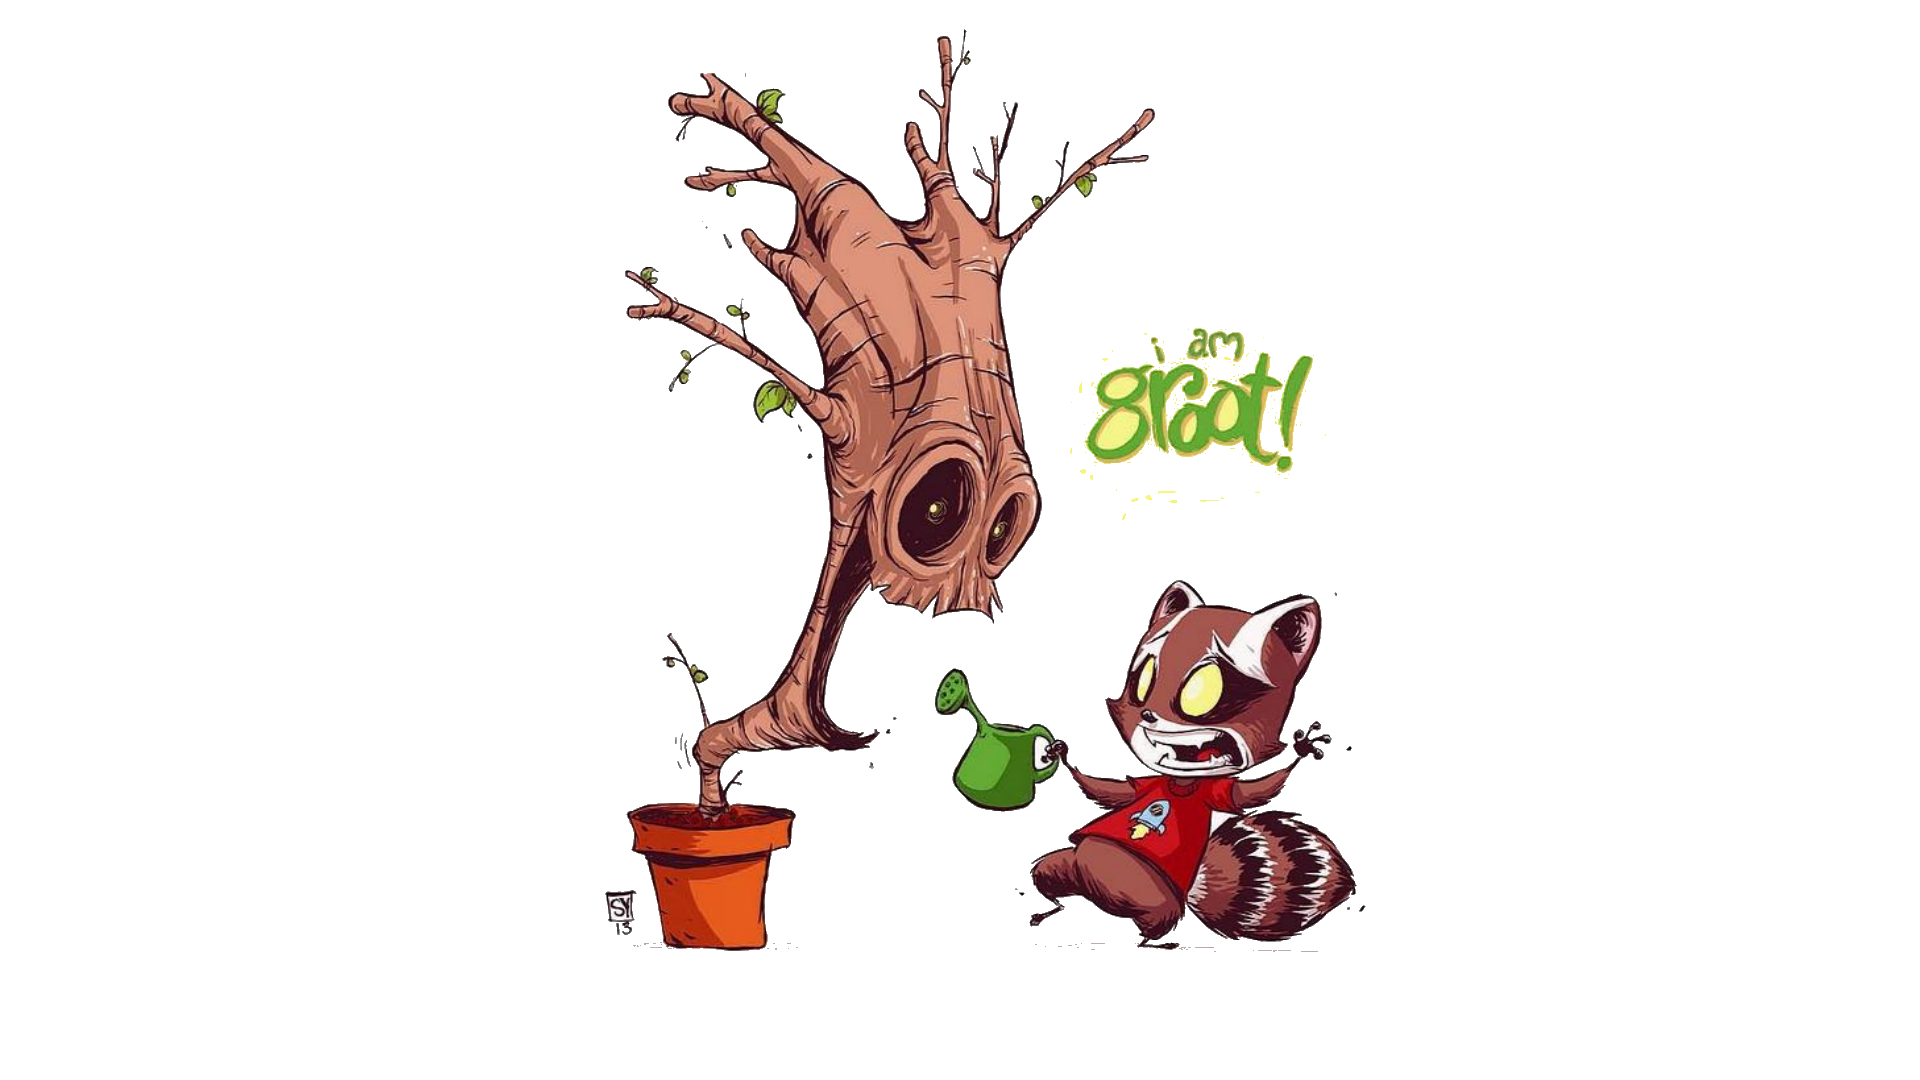 Guardians-of-the-Galaxy-Skottie-Young-1920x1080-Imgur-wallpaper-wp3606468